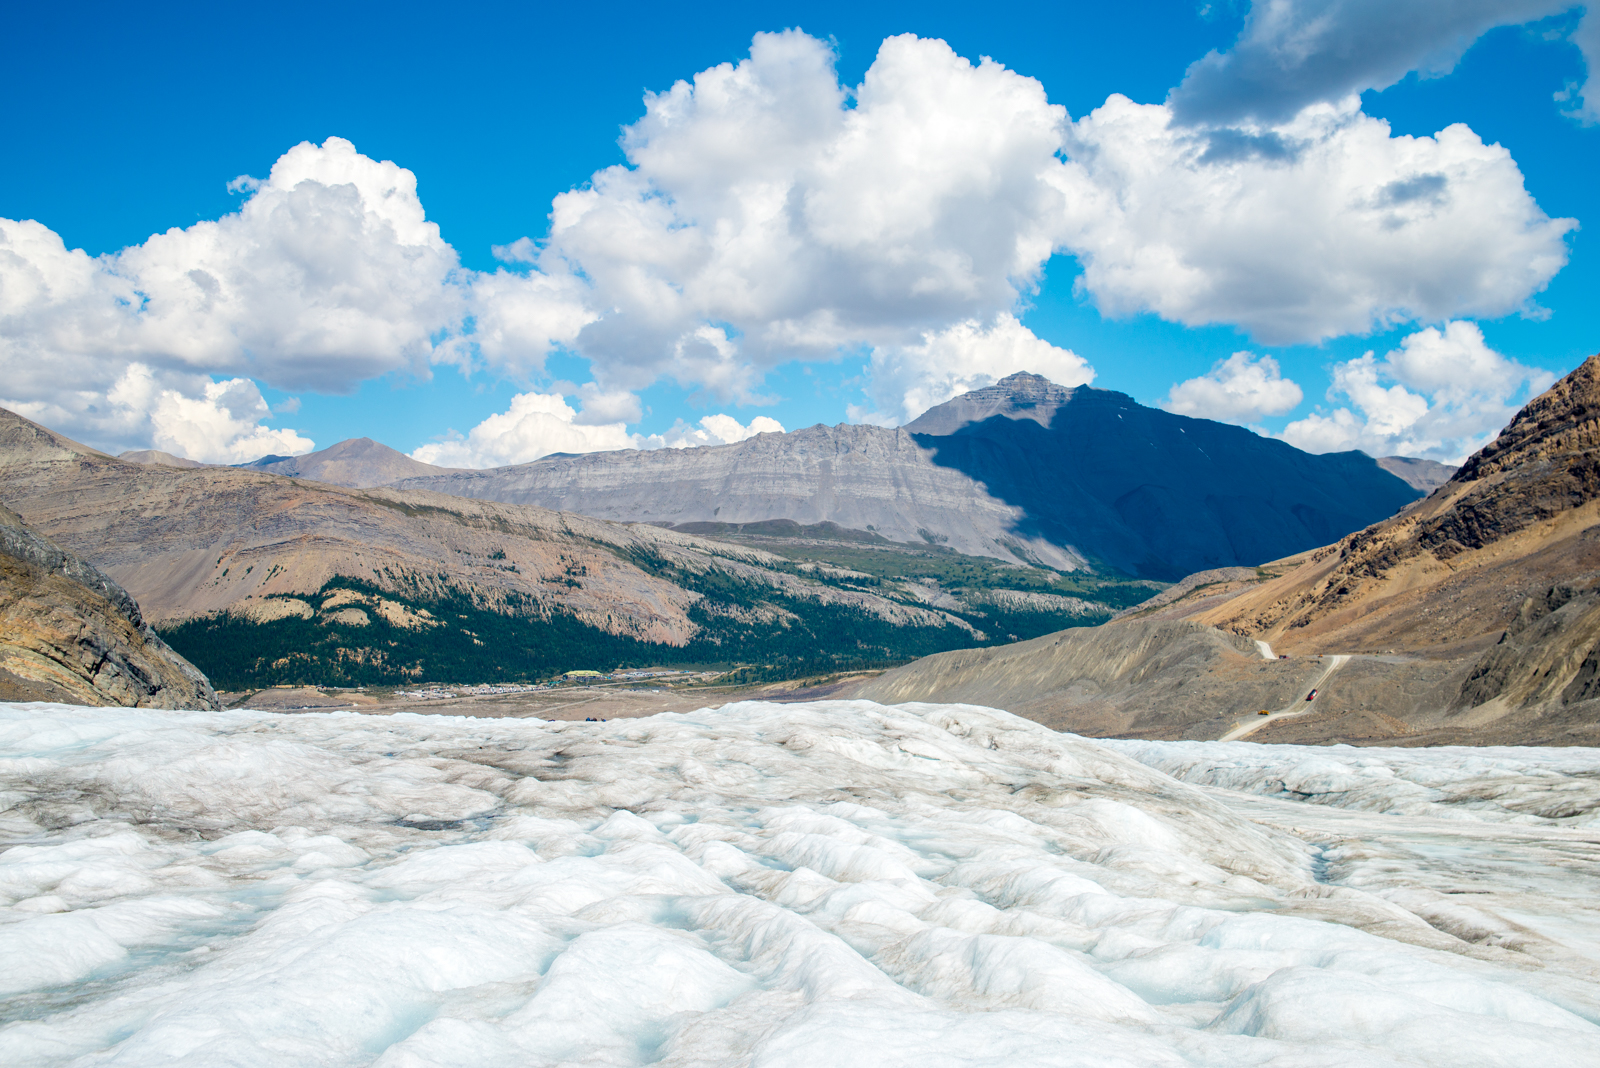 Walking on the Athabasca Glacier